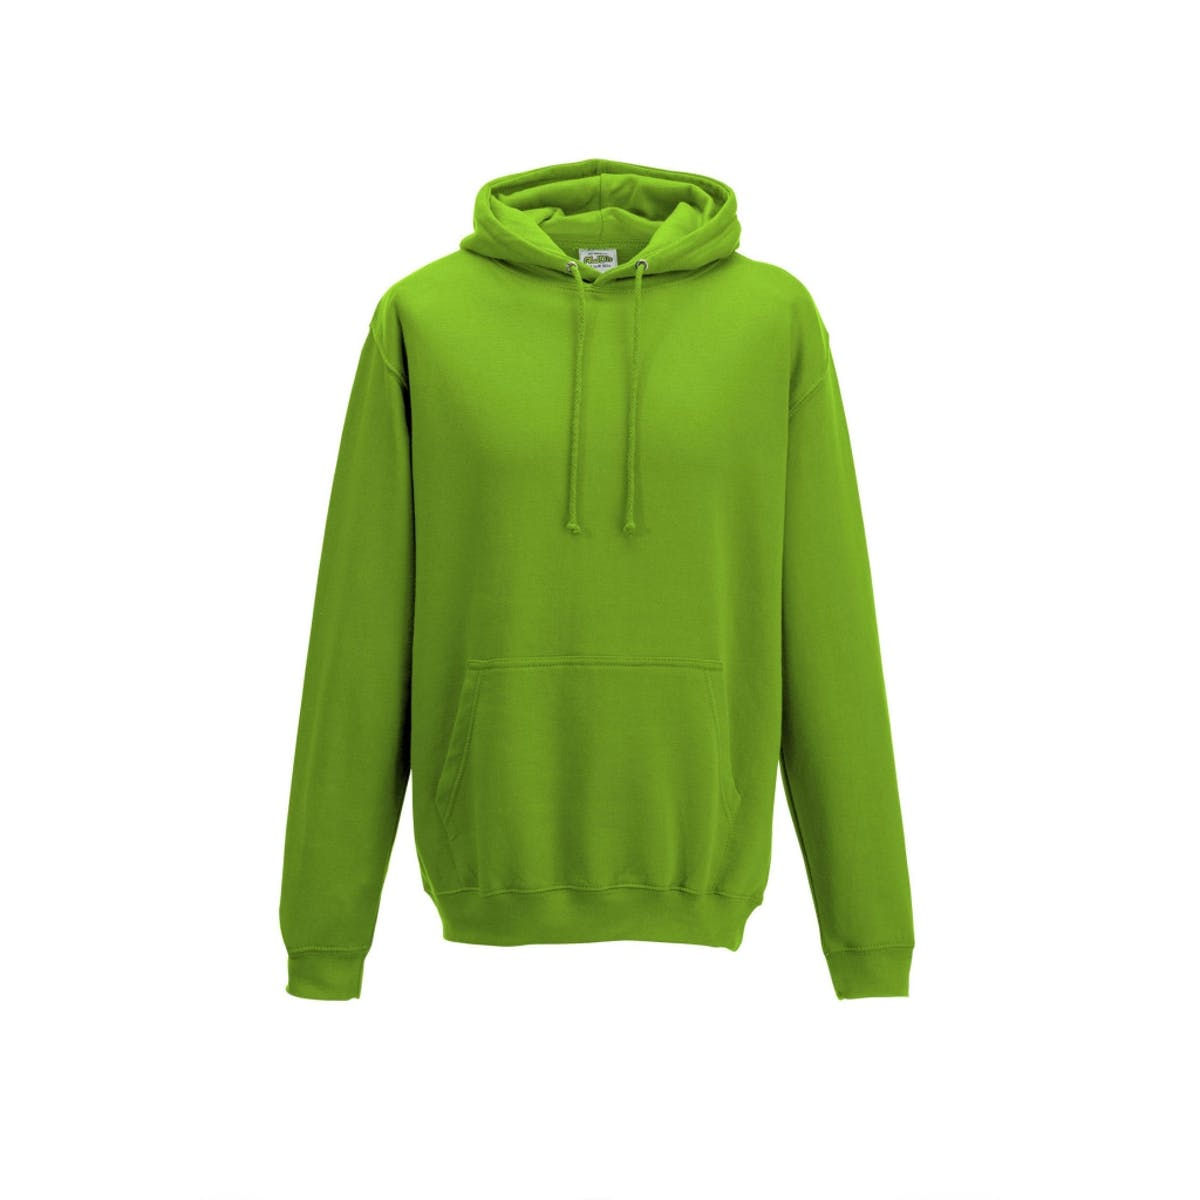 alien green college hoodies